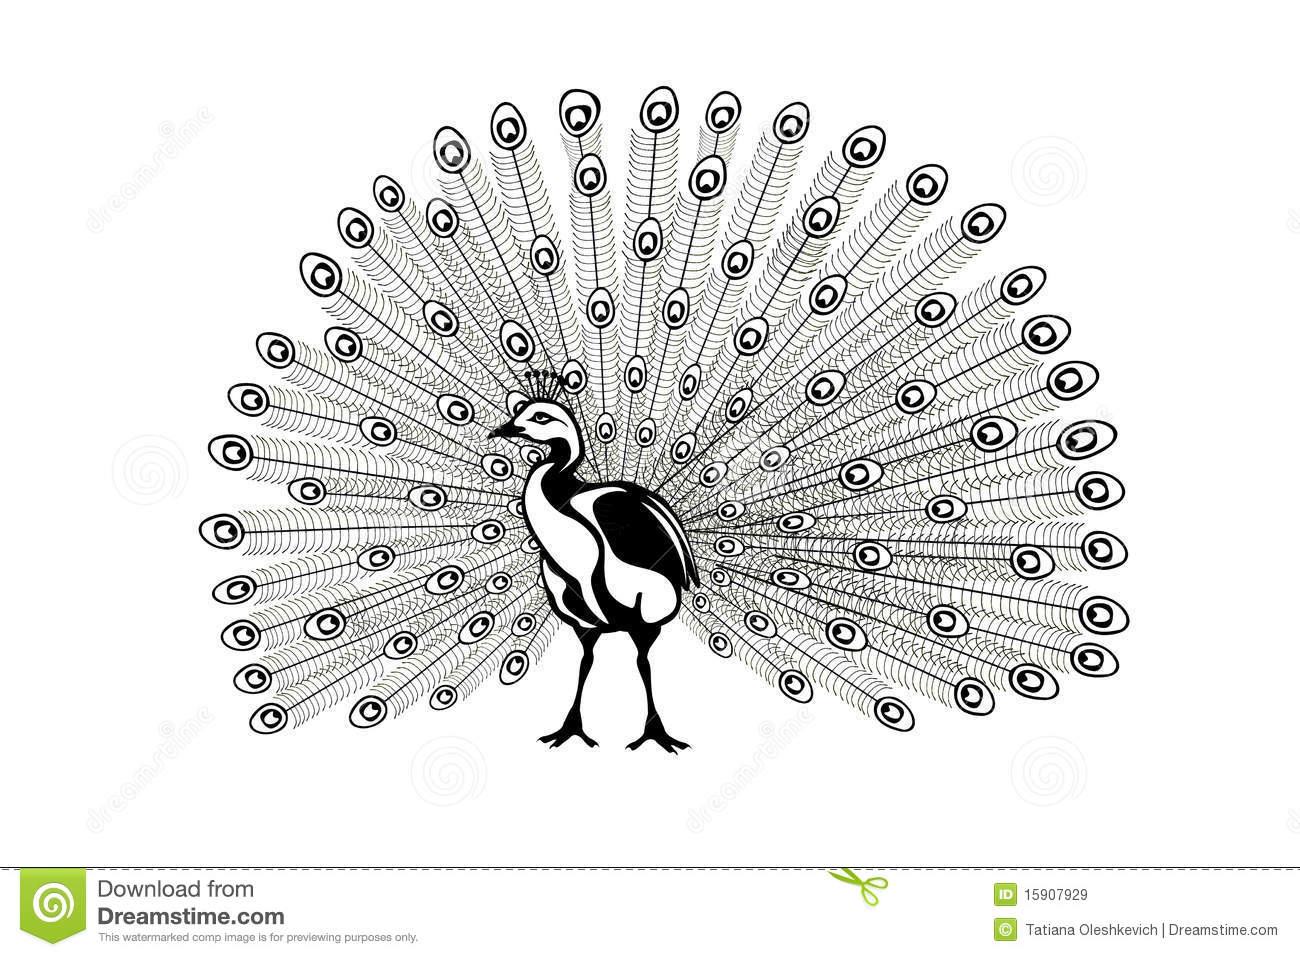 peacock images clip art